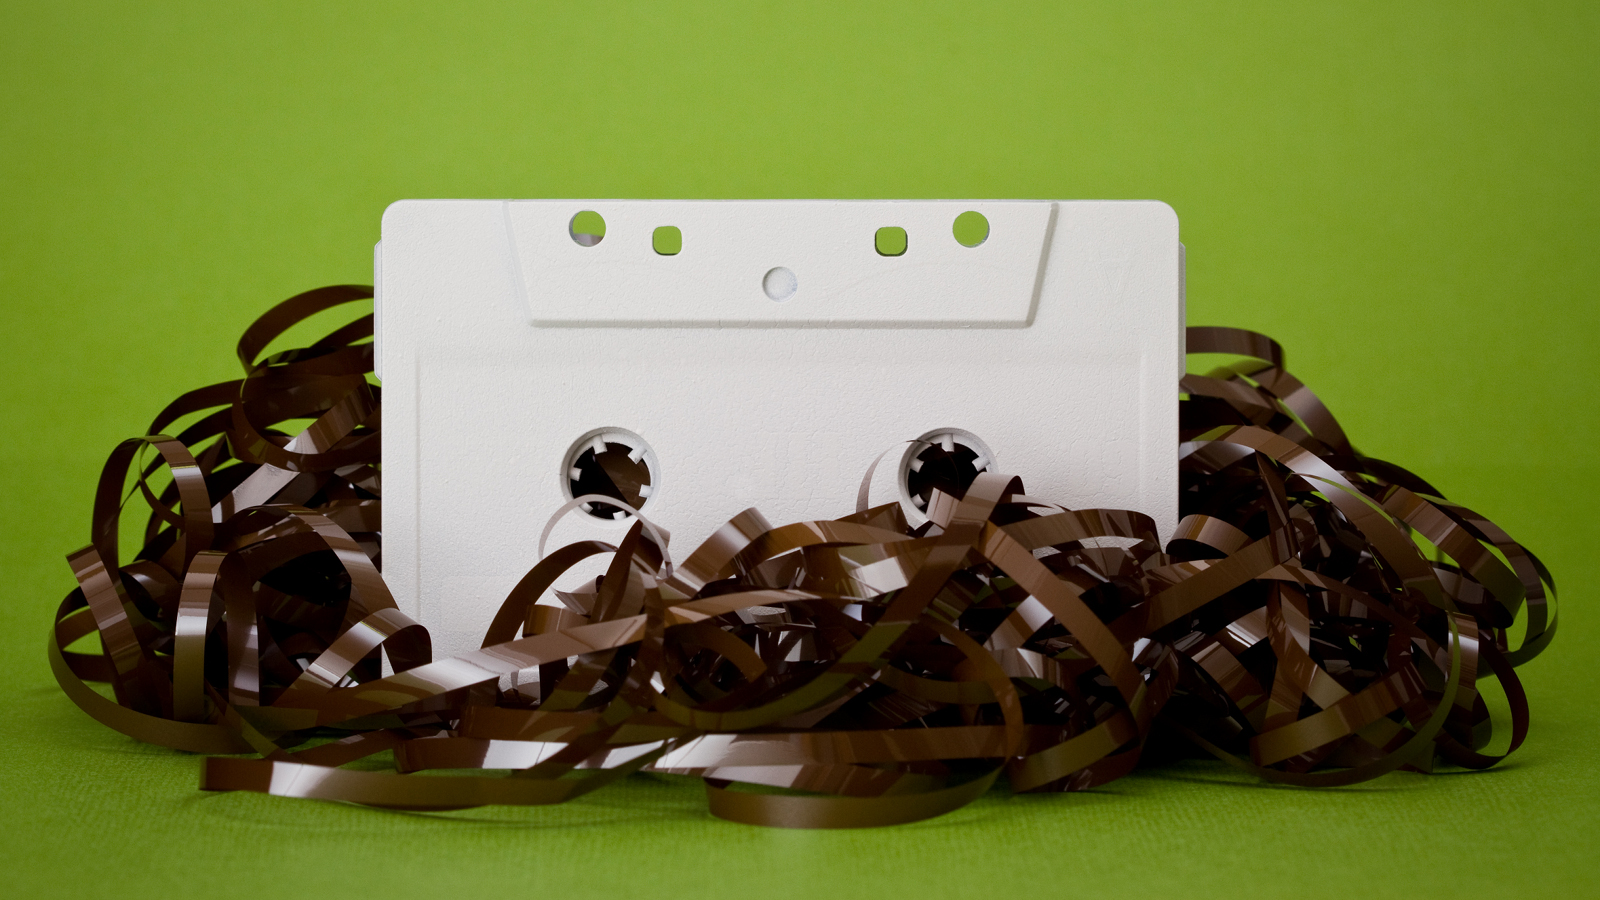 Click here to read The Future of Data Storage Is... Cassette Tape?